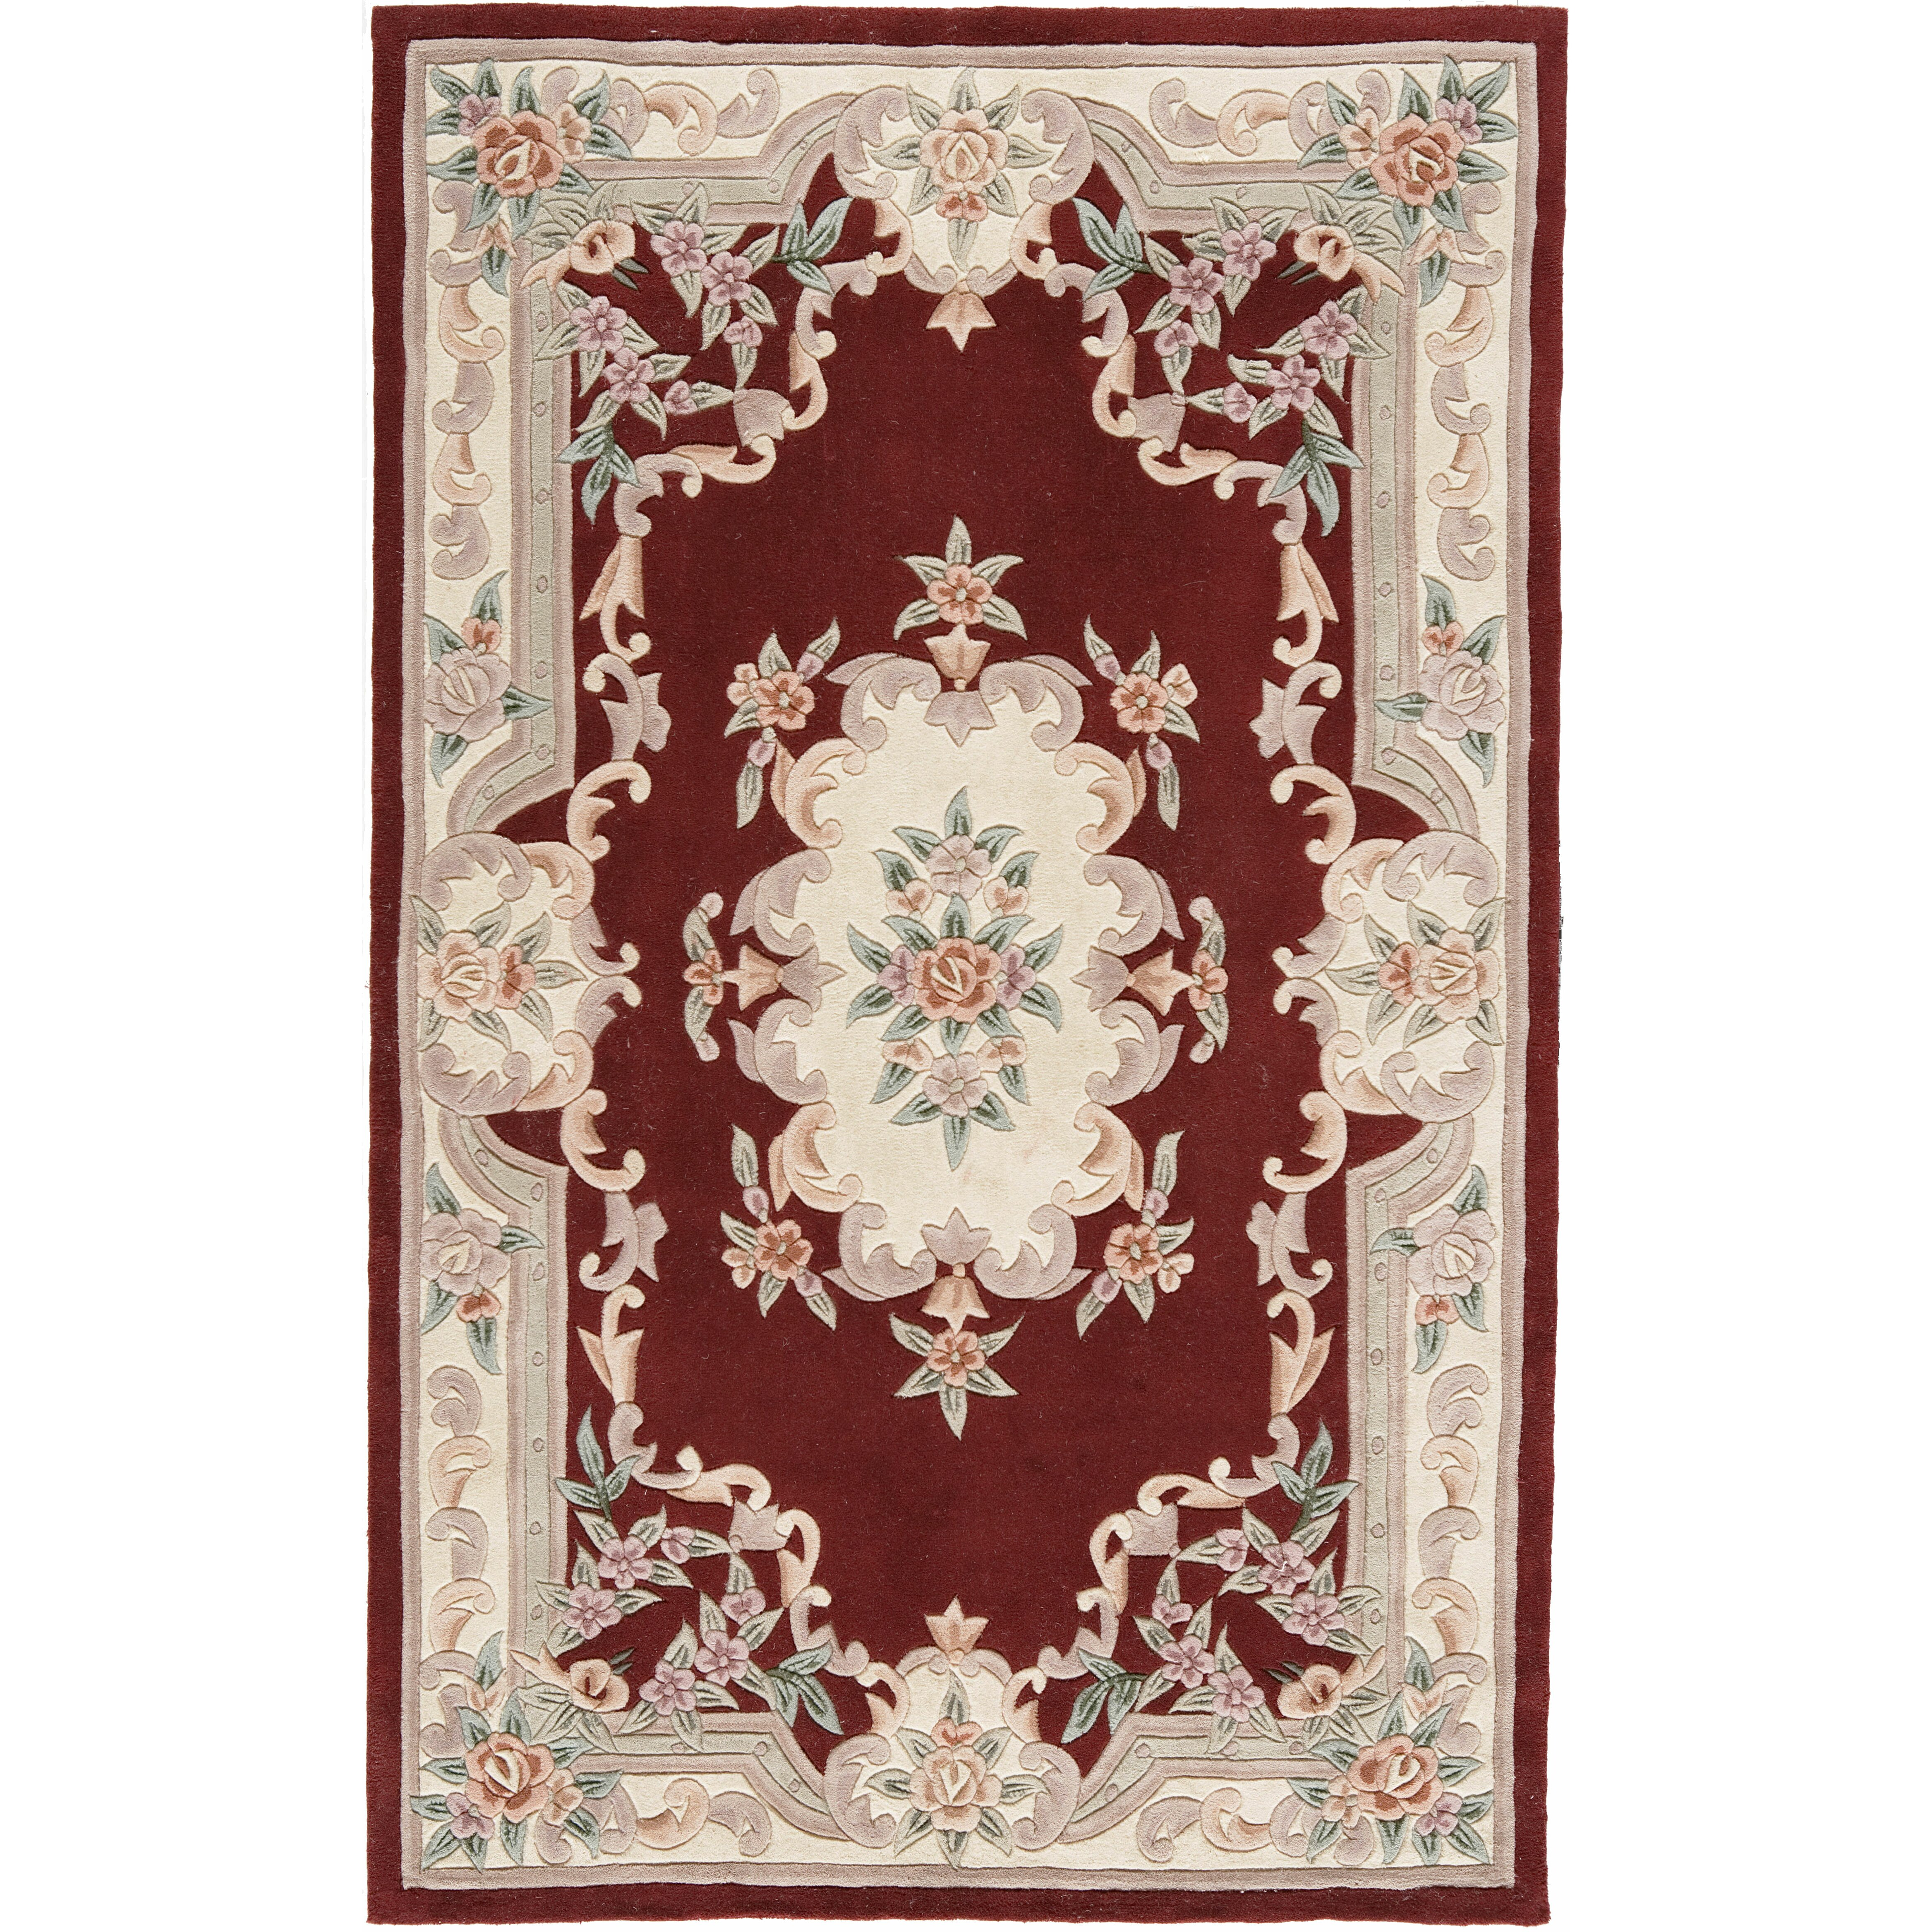 The conestoga trading co hand tufted burgundy oriental for The rug company rugs